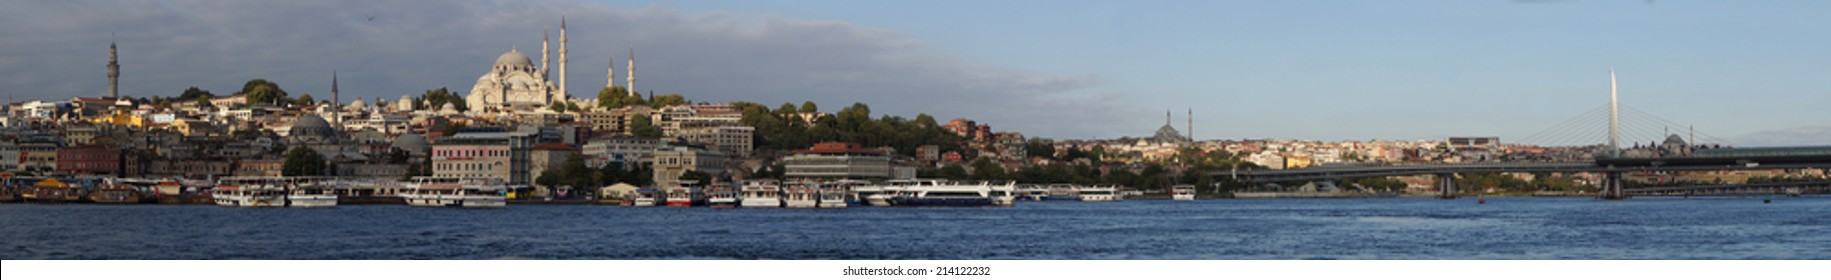 ISTAMBUL - August 30, 2014.  Panorama of Istambul, the largest city of Turquey, from the Bosforus waterway. On August 2014 in Istambul, Turkey.